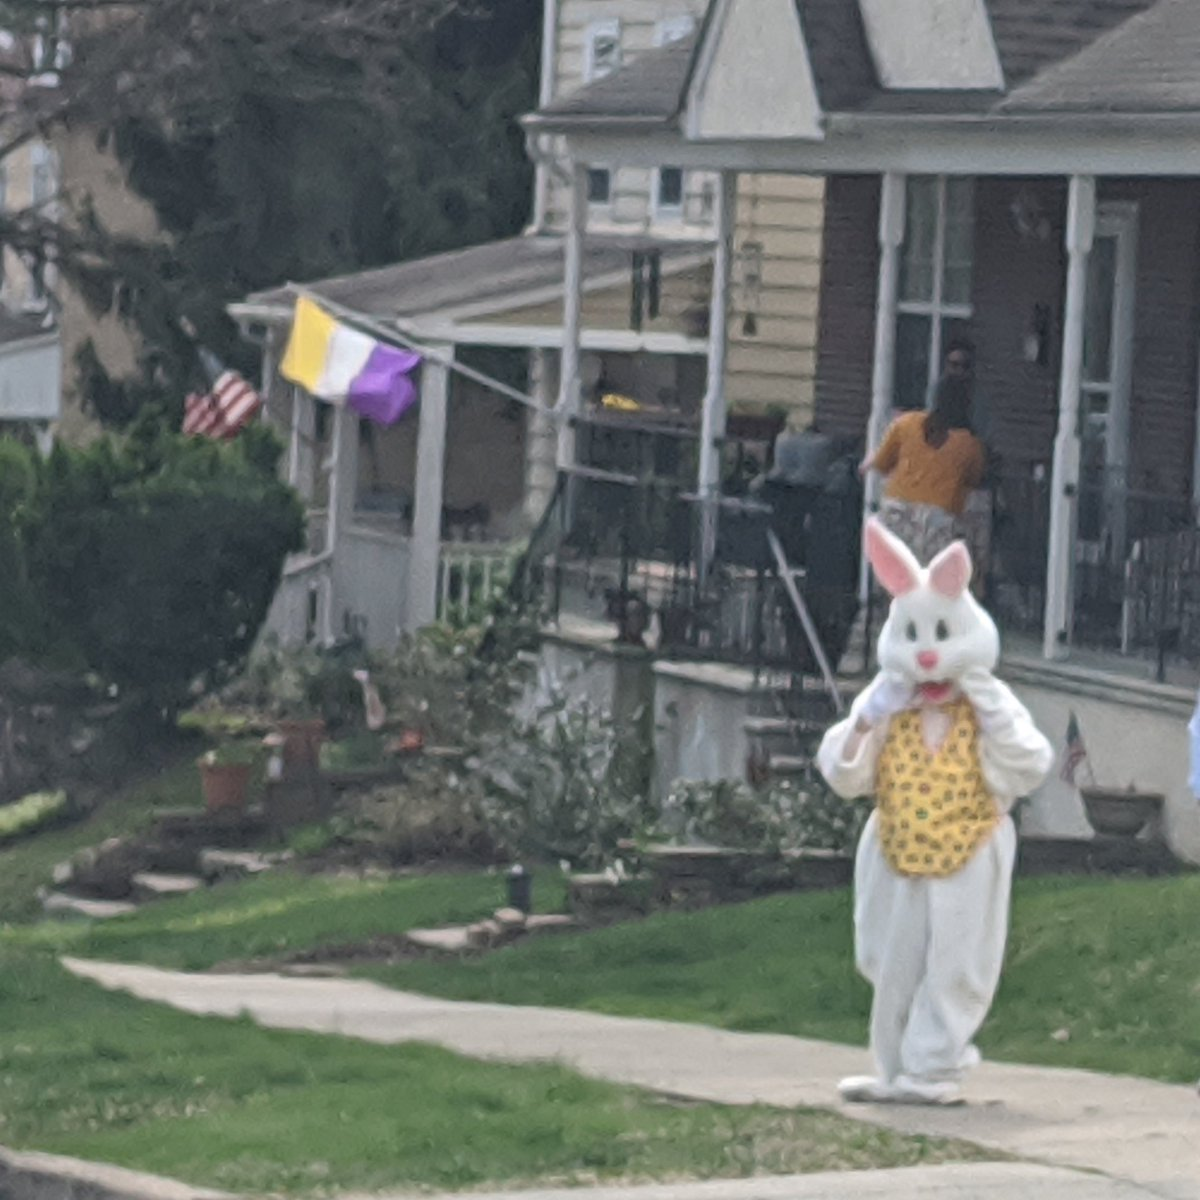 The Easter Bunny was out doing his job in Conshohocken yesterday. Happy Easter